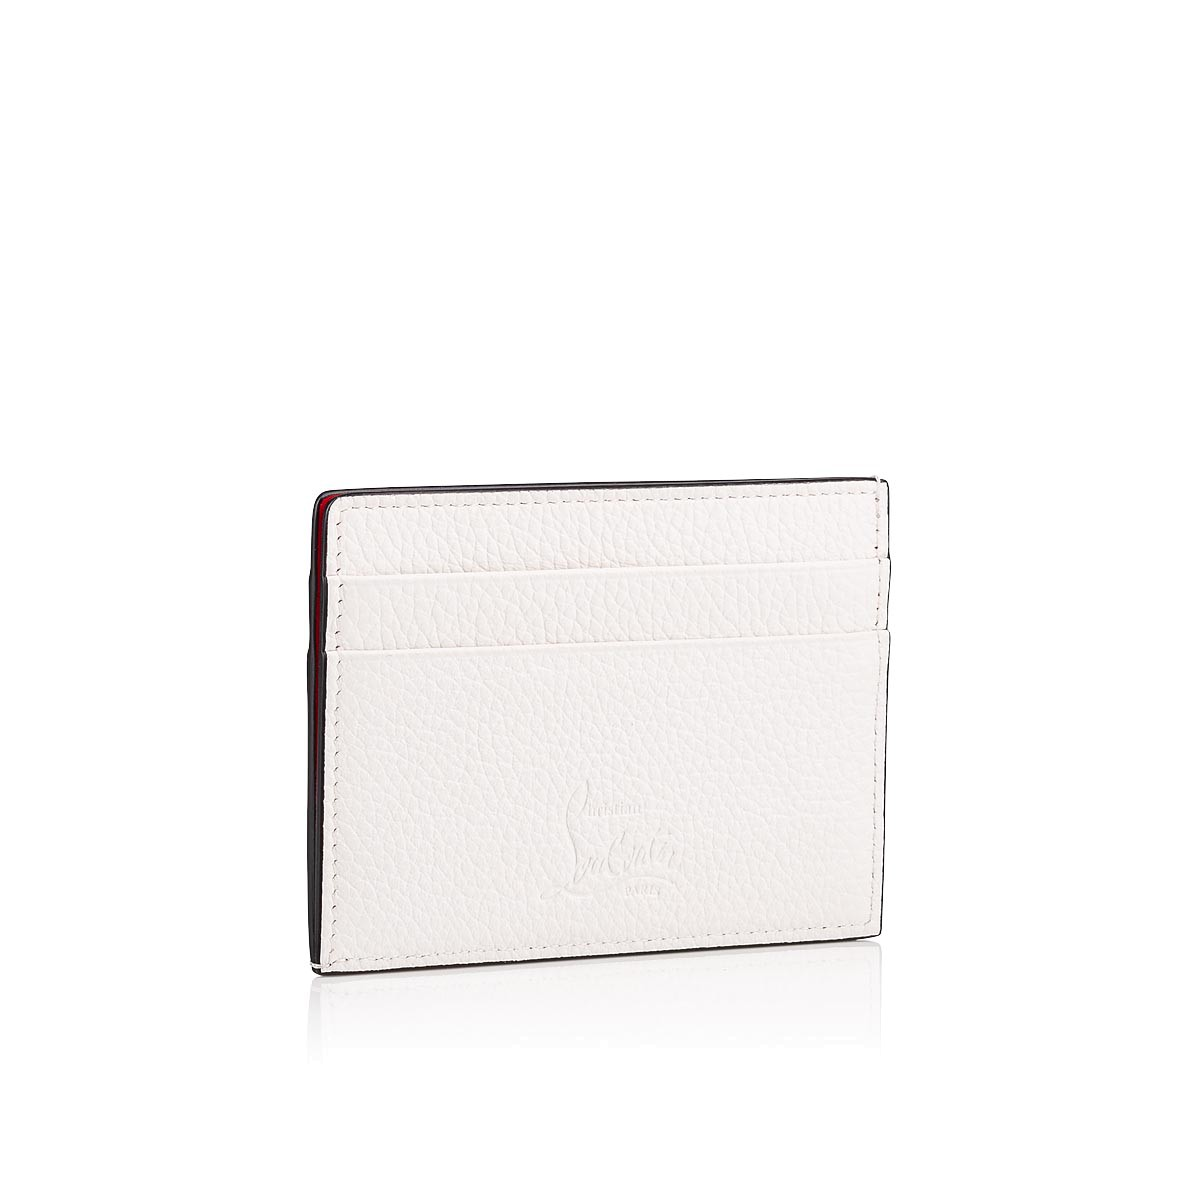 Small Leather Goods - Kios Cardholder - Christian Louboutin